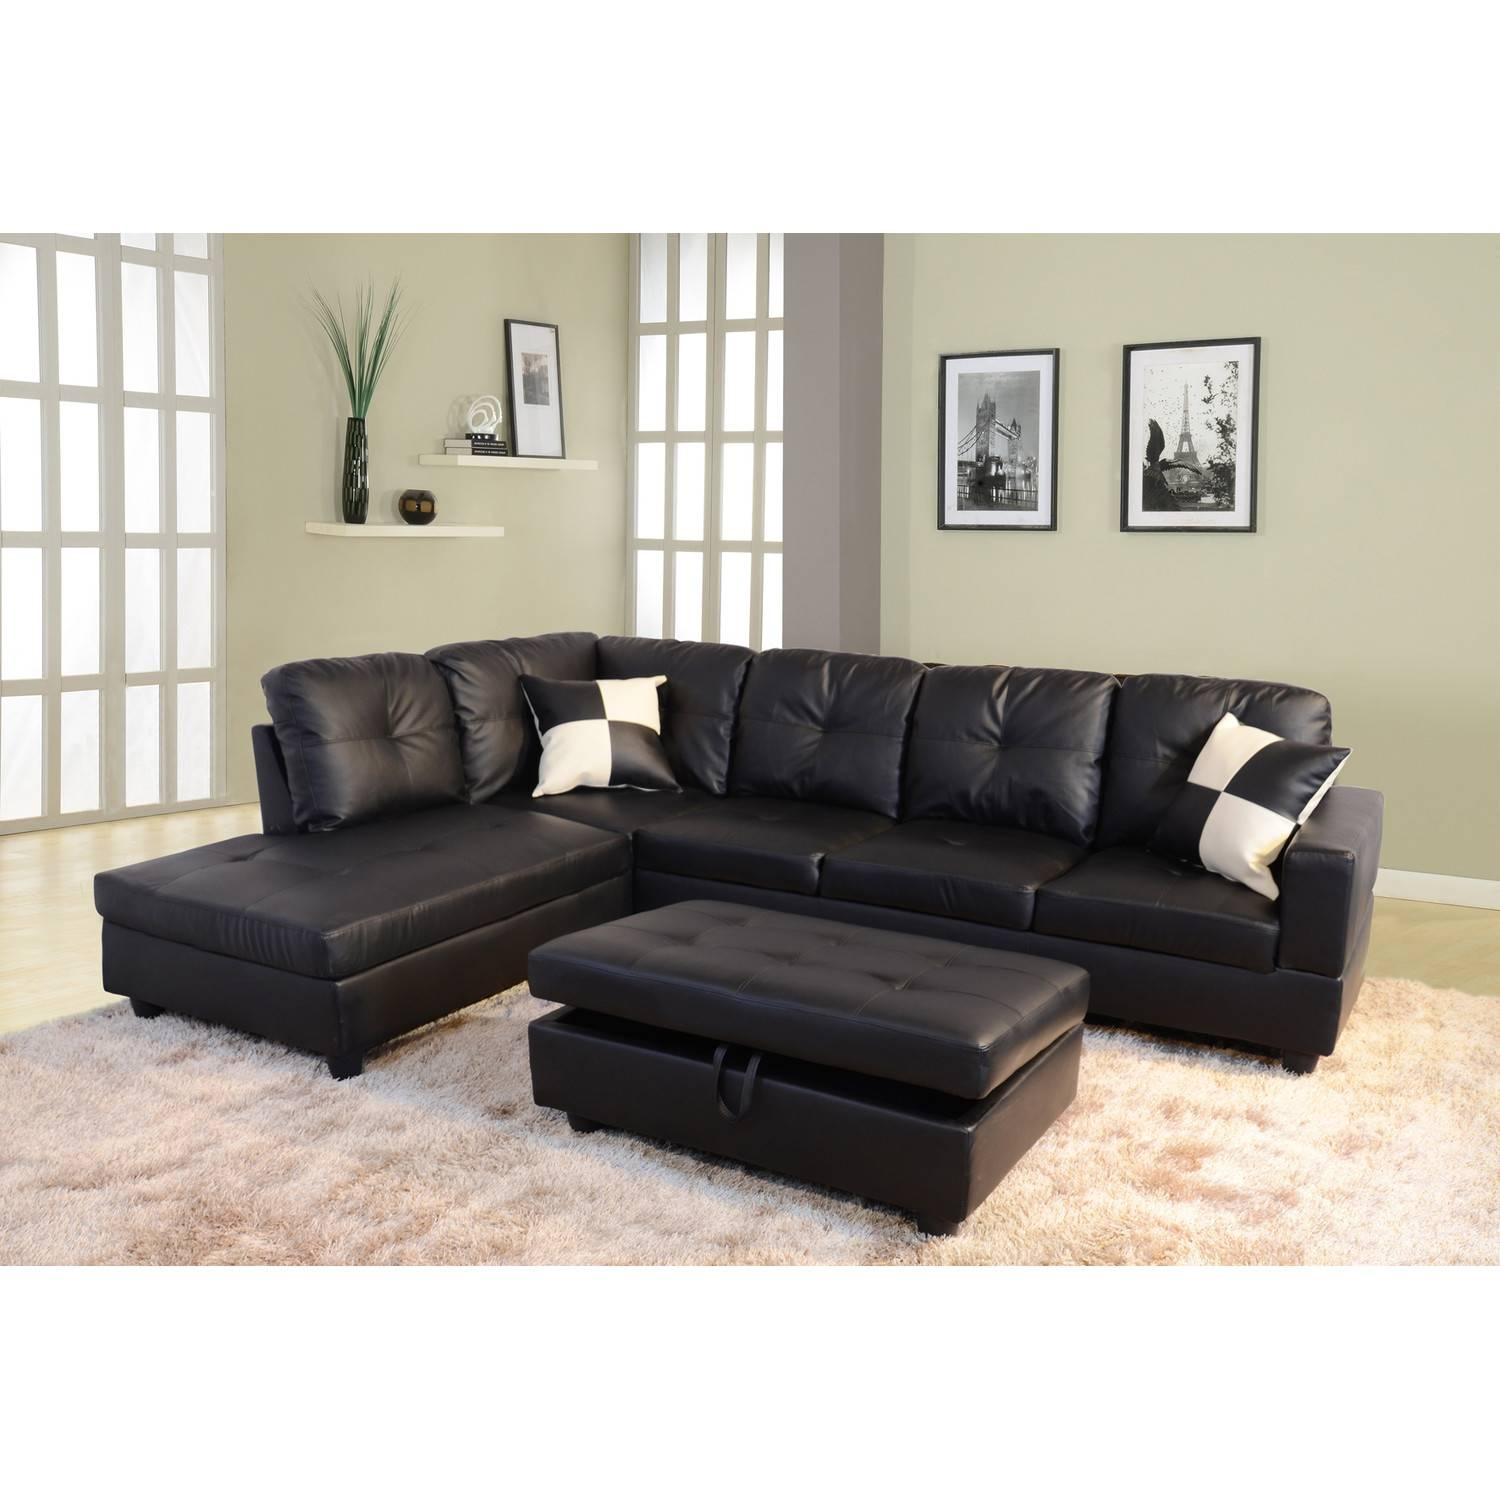 Furniture: Classic And Traditional Style Velvet Sectional Sofa For with Tufted Sectional Sofa Chaise (Image 5 of 25)